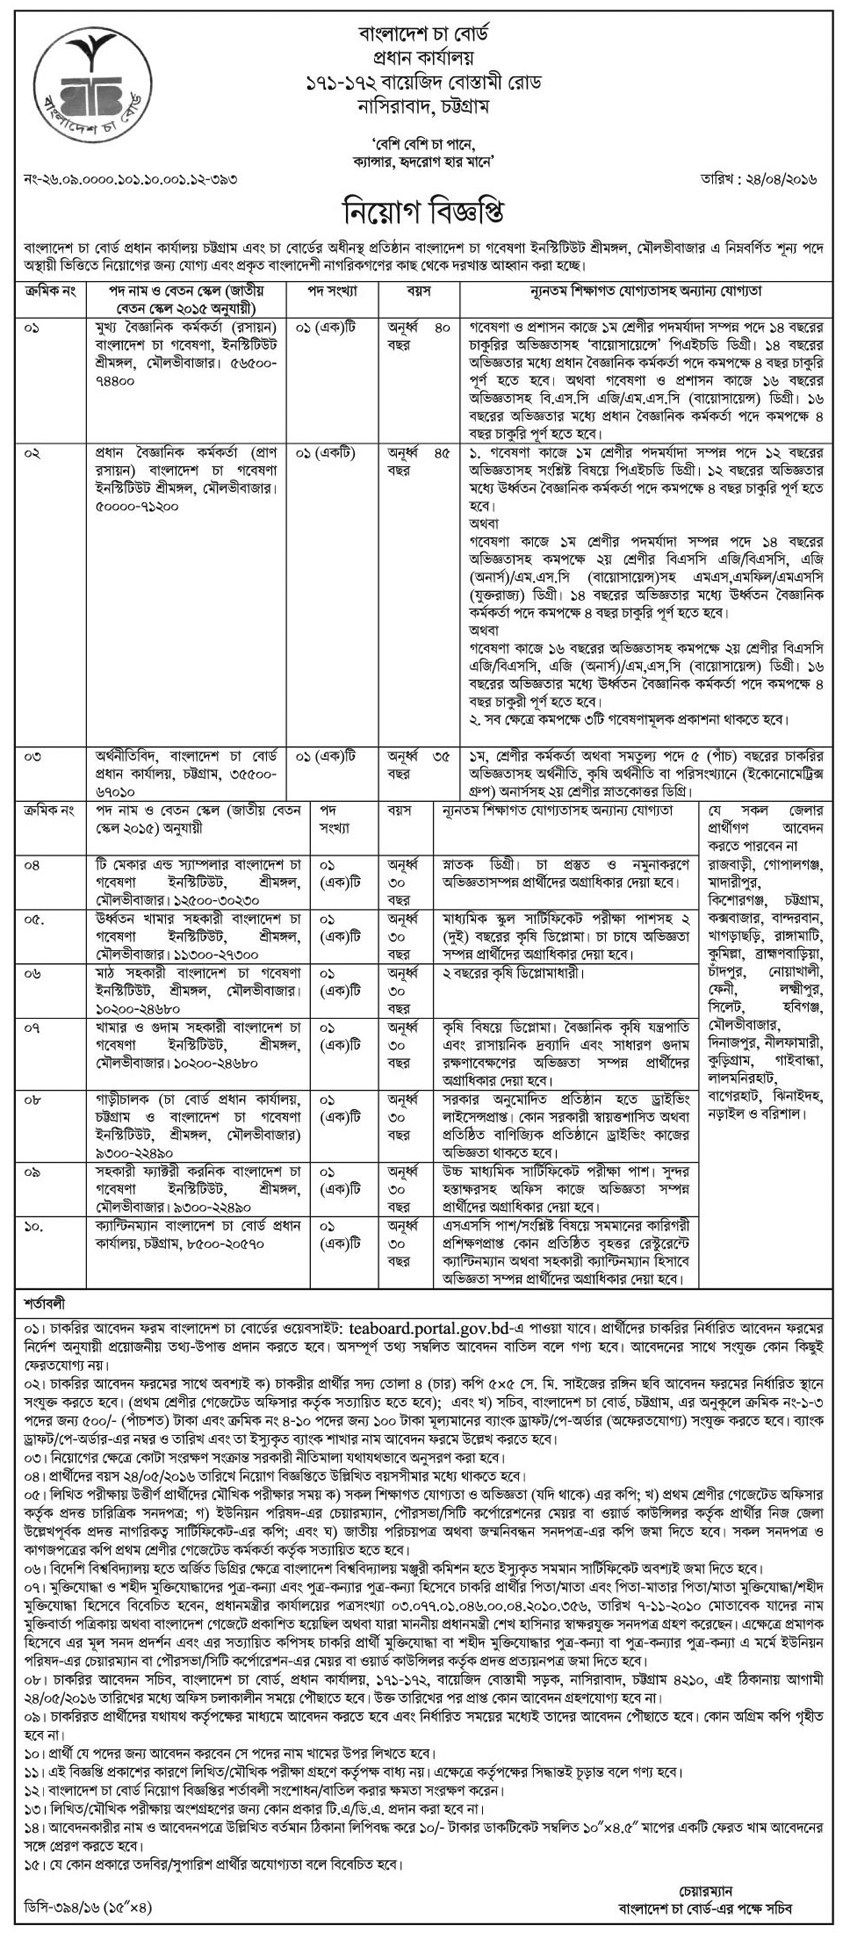 Bangladesh Tea Board Job Circular 2016 (With images) Job